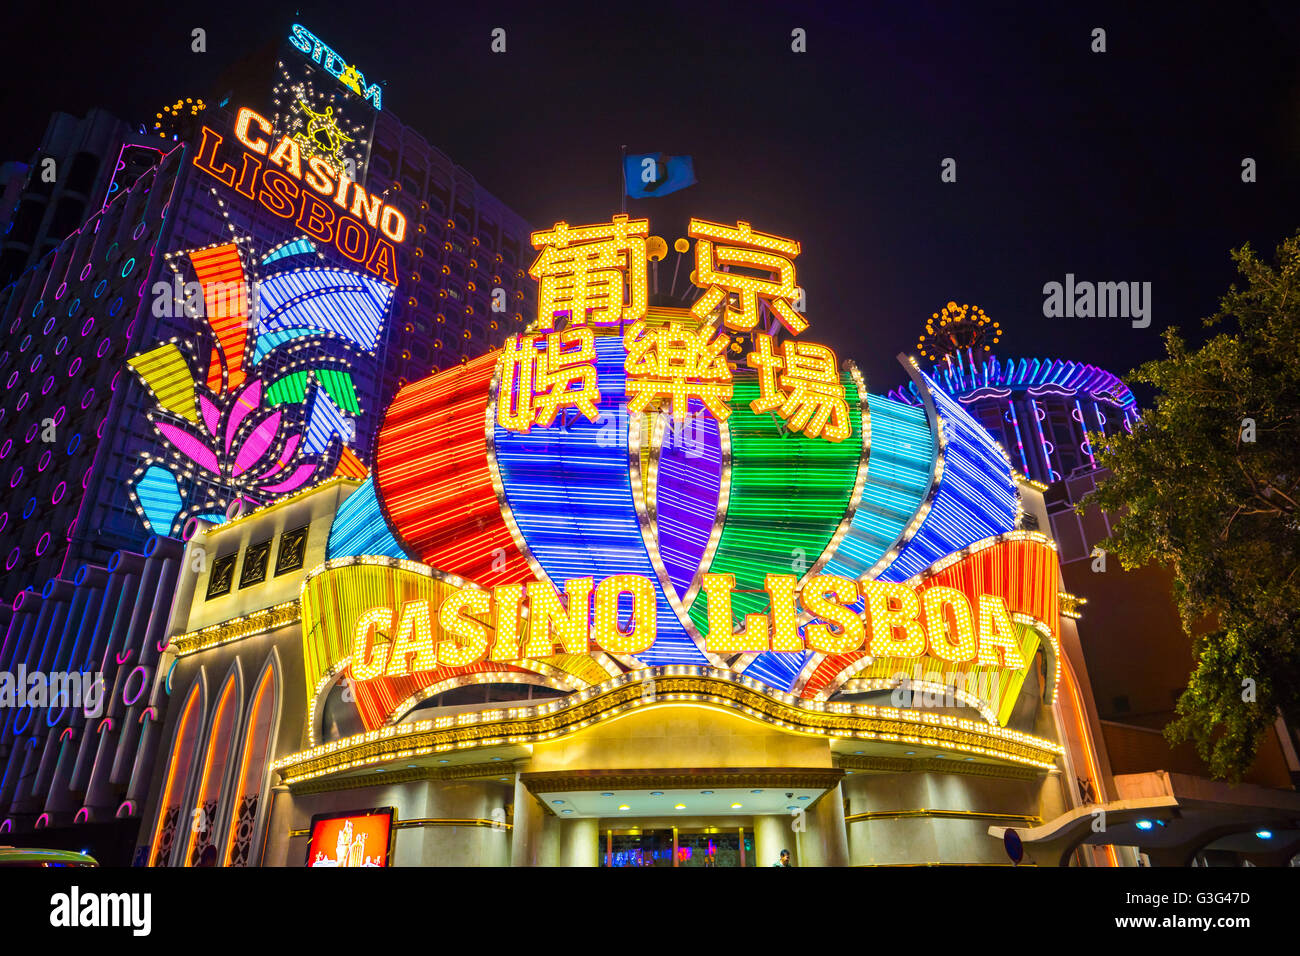 Macau casino stock casino nickel online slot